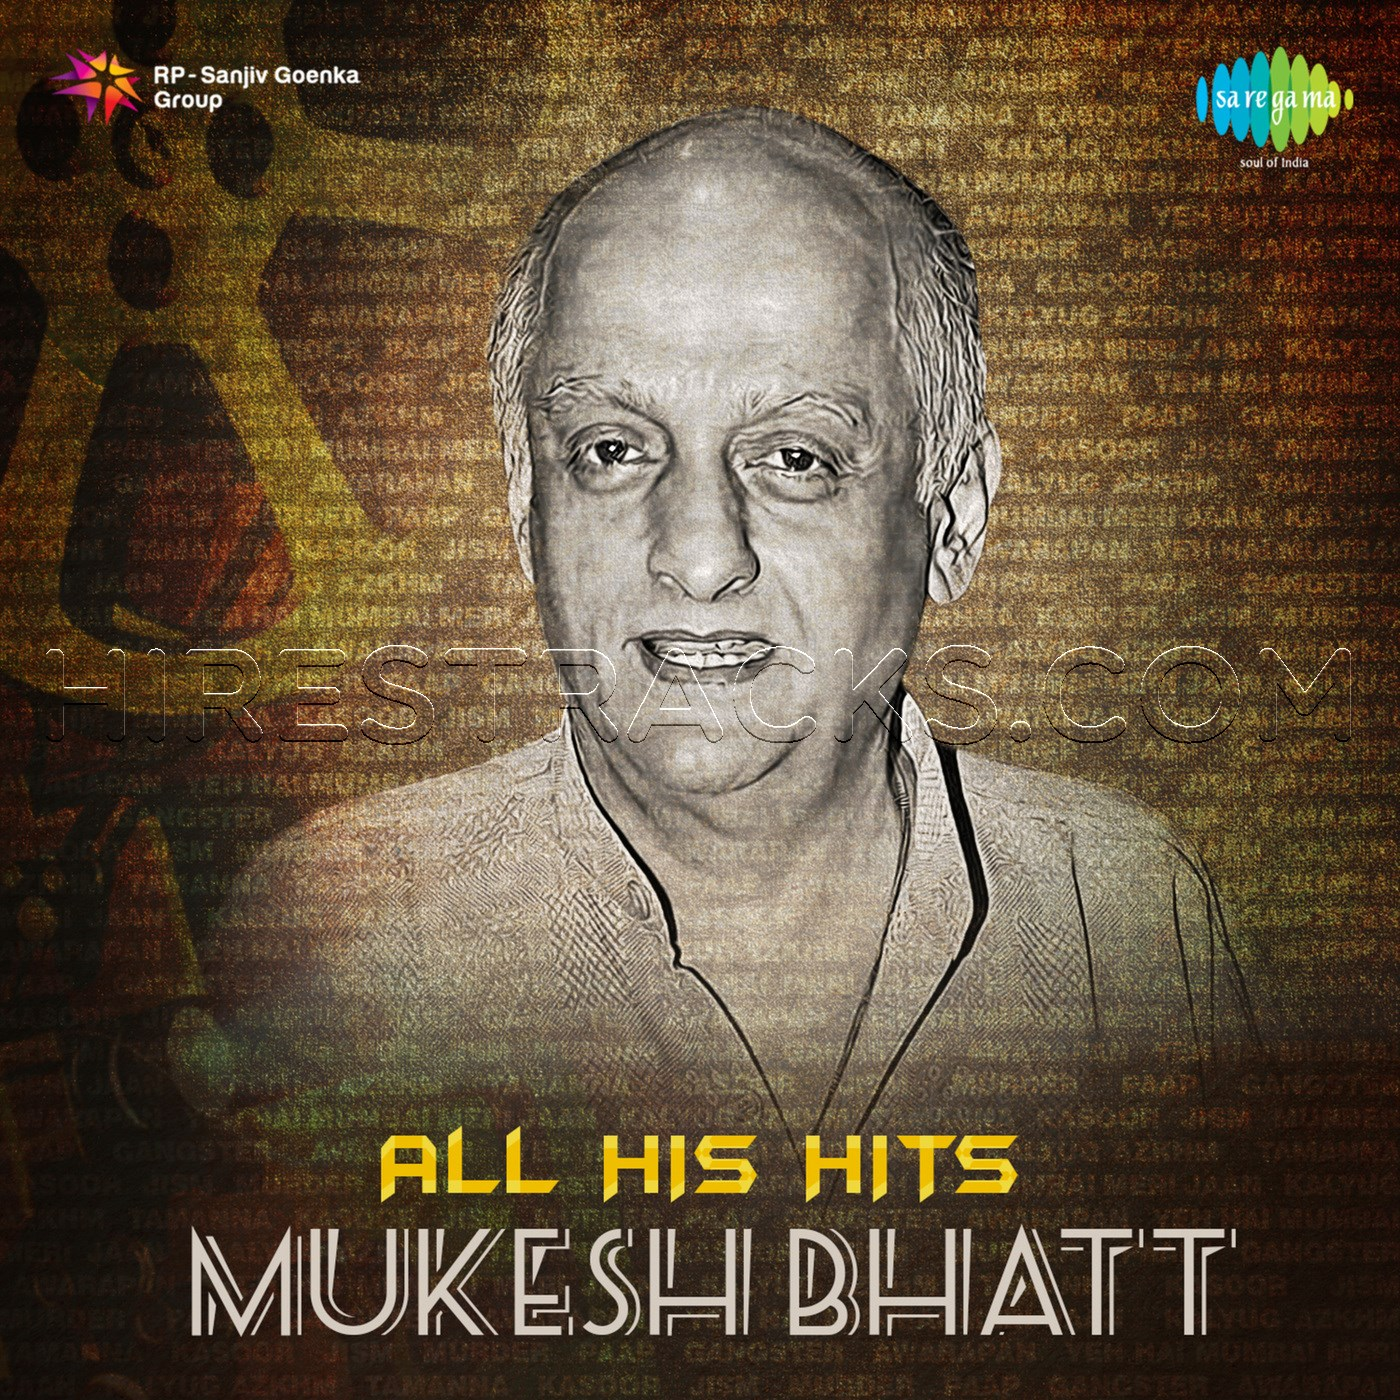 All His Hits – Mukesh Bhatt (2018)